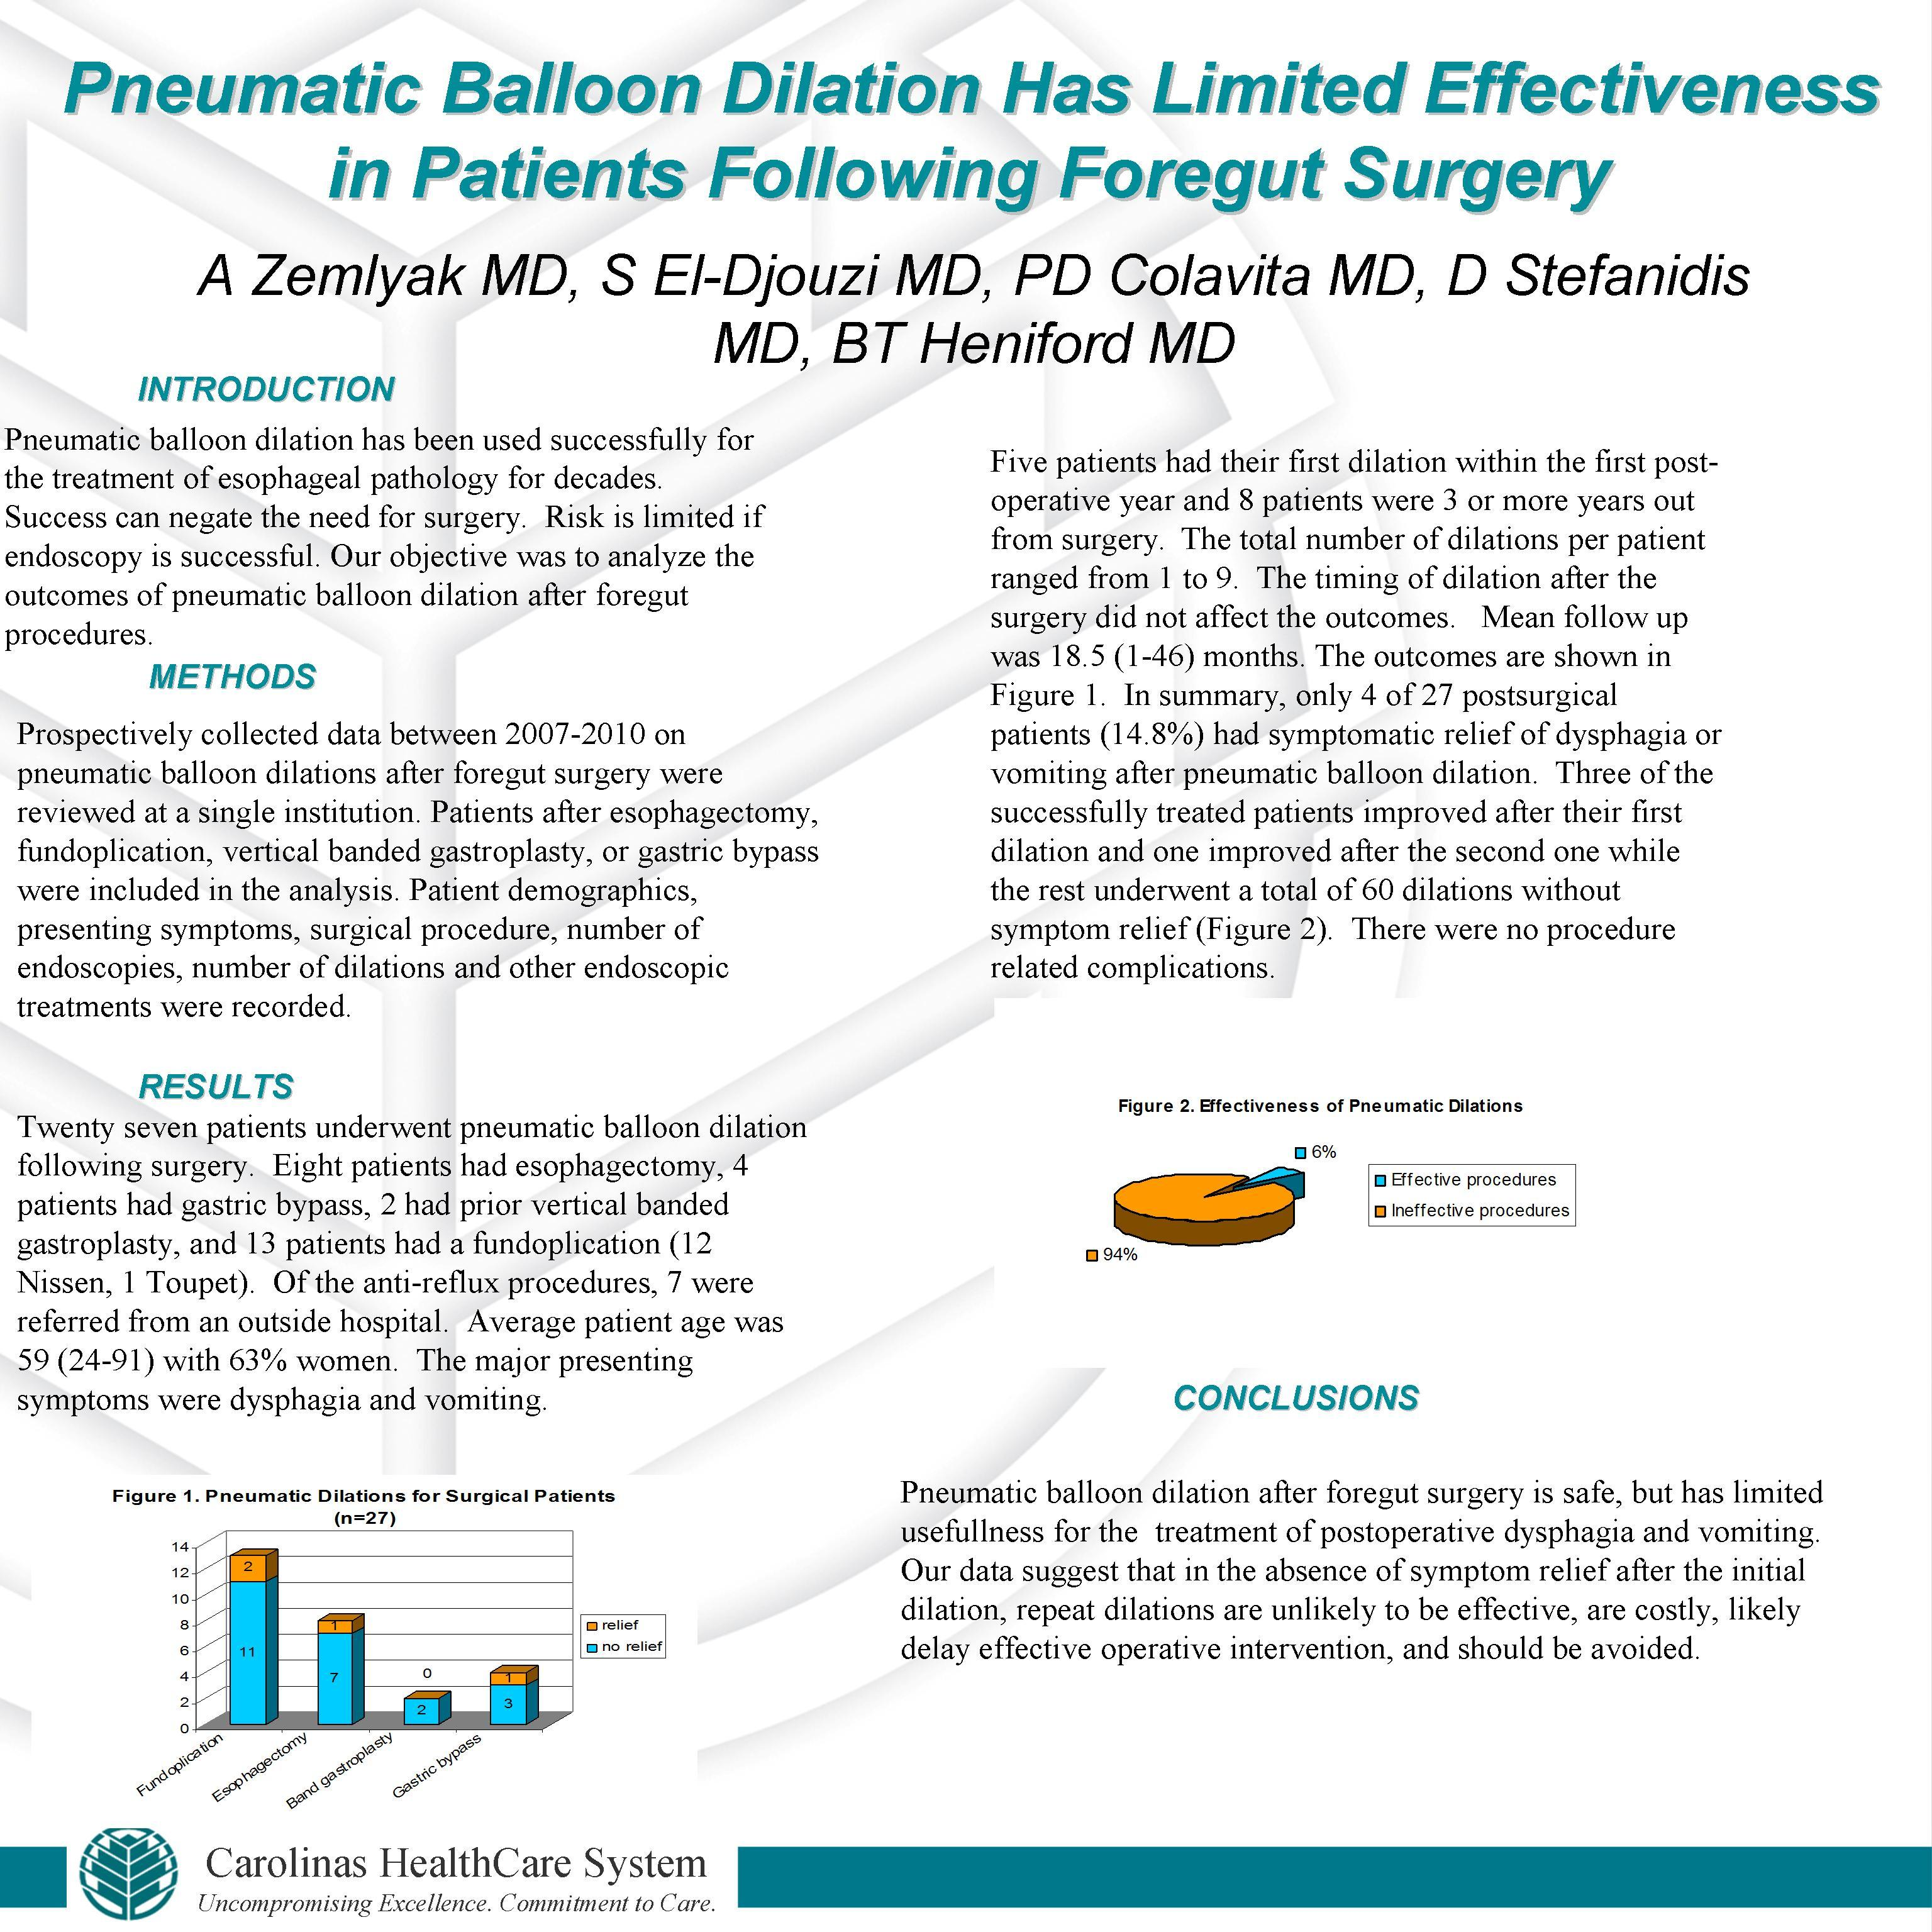 Pneumatic Balloon Dilation Has Limited Effectiveness in